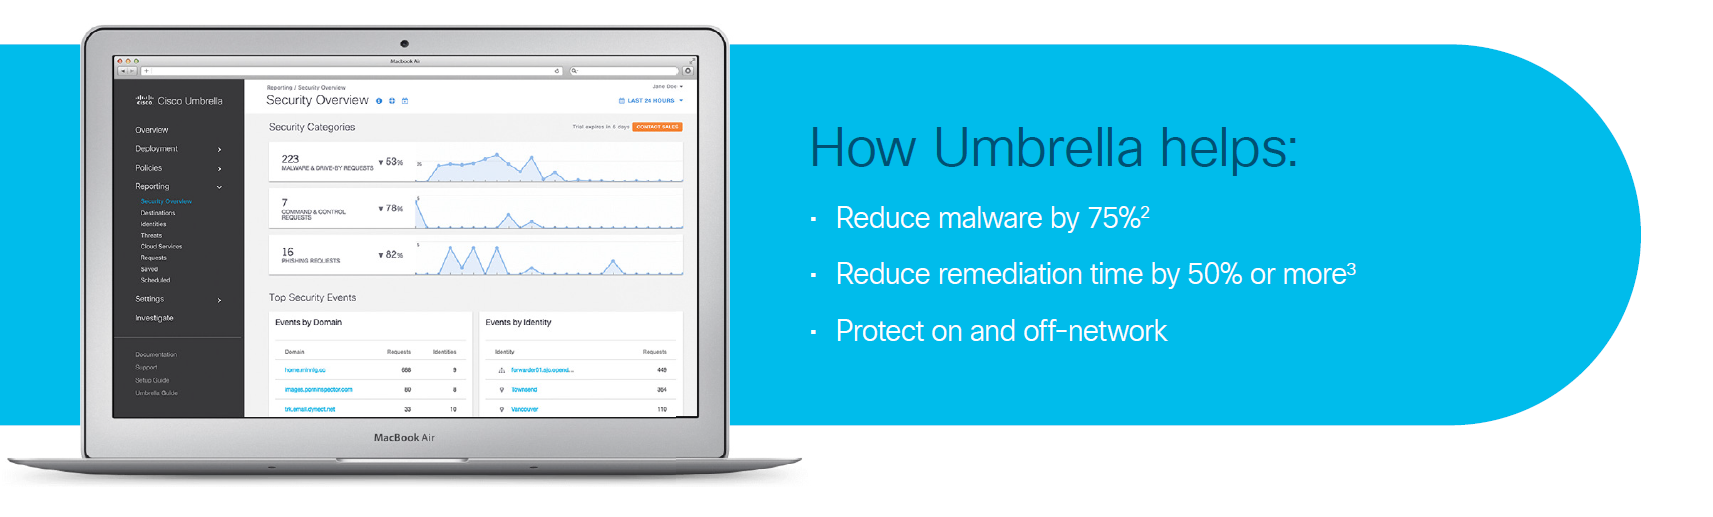 Umbrella - Reduce Malware